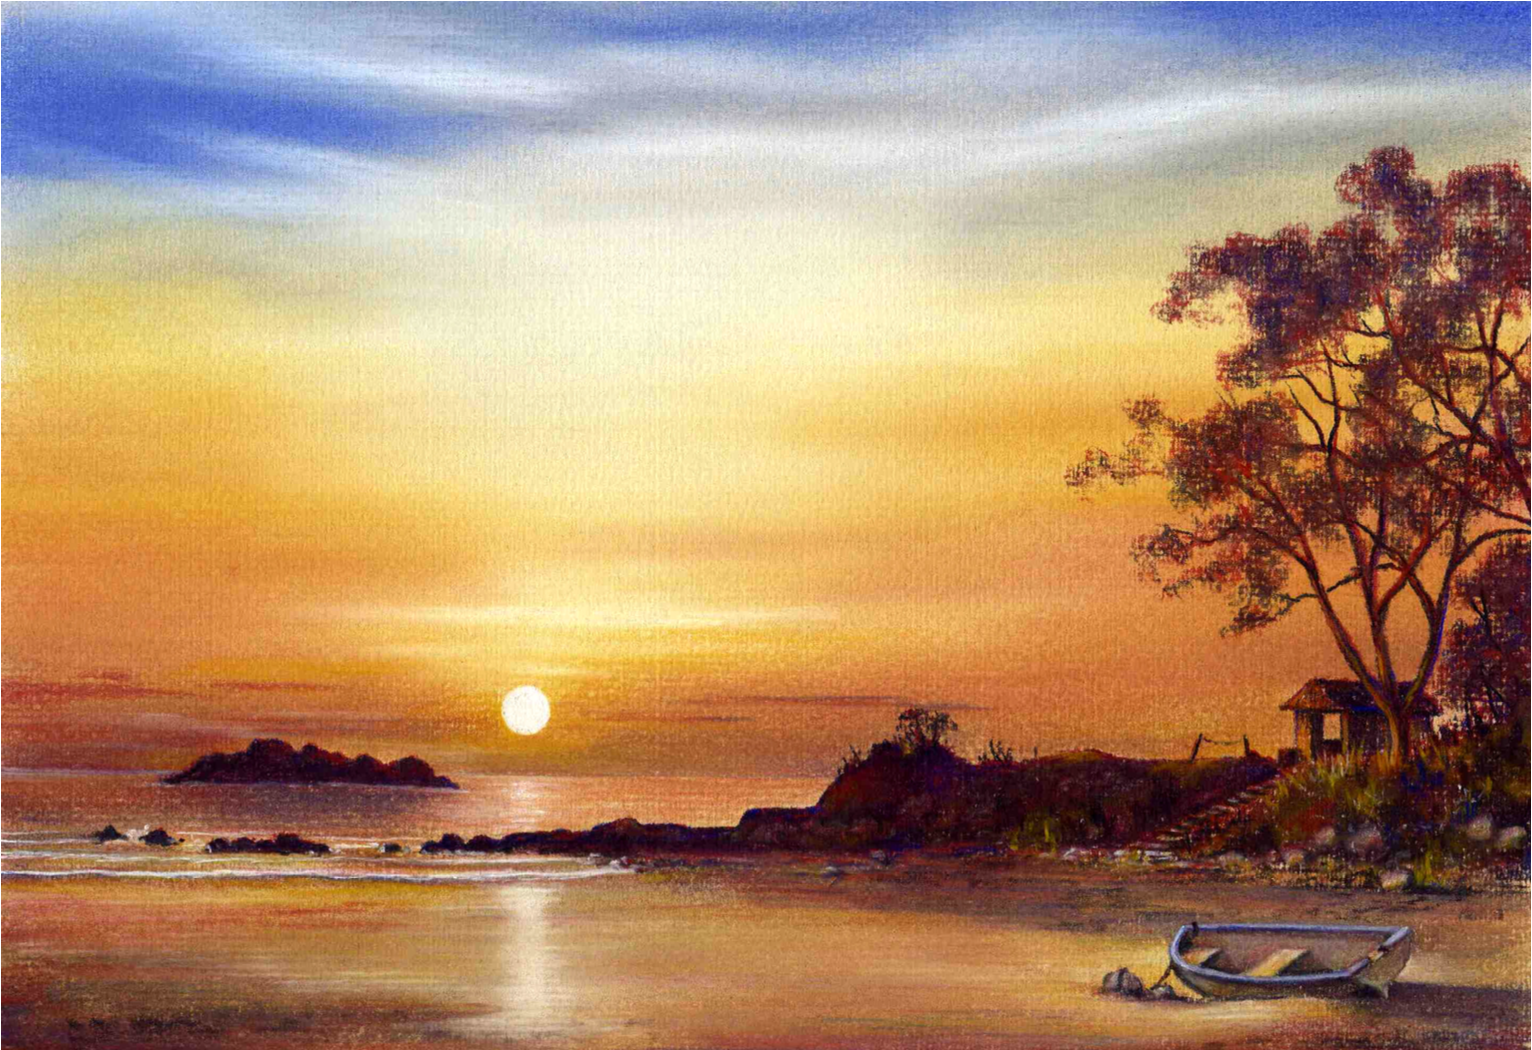 Learn To Draw With Pastel Pencils Landscapes Beginners Starter Pack